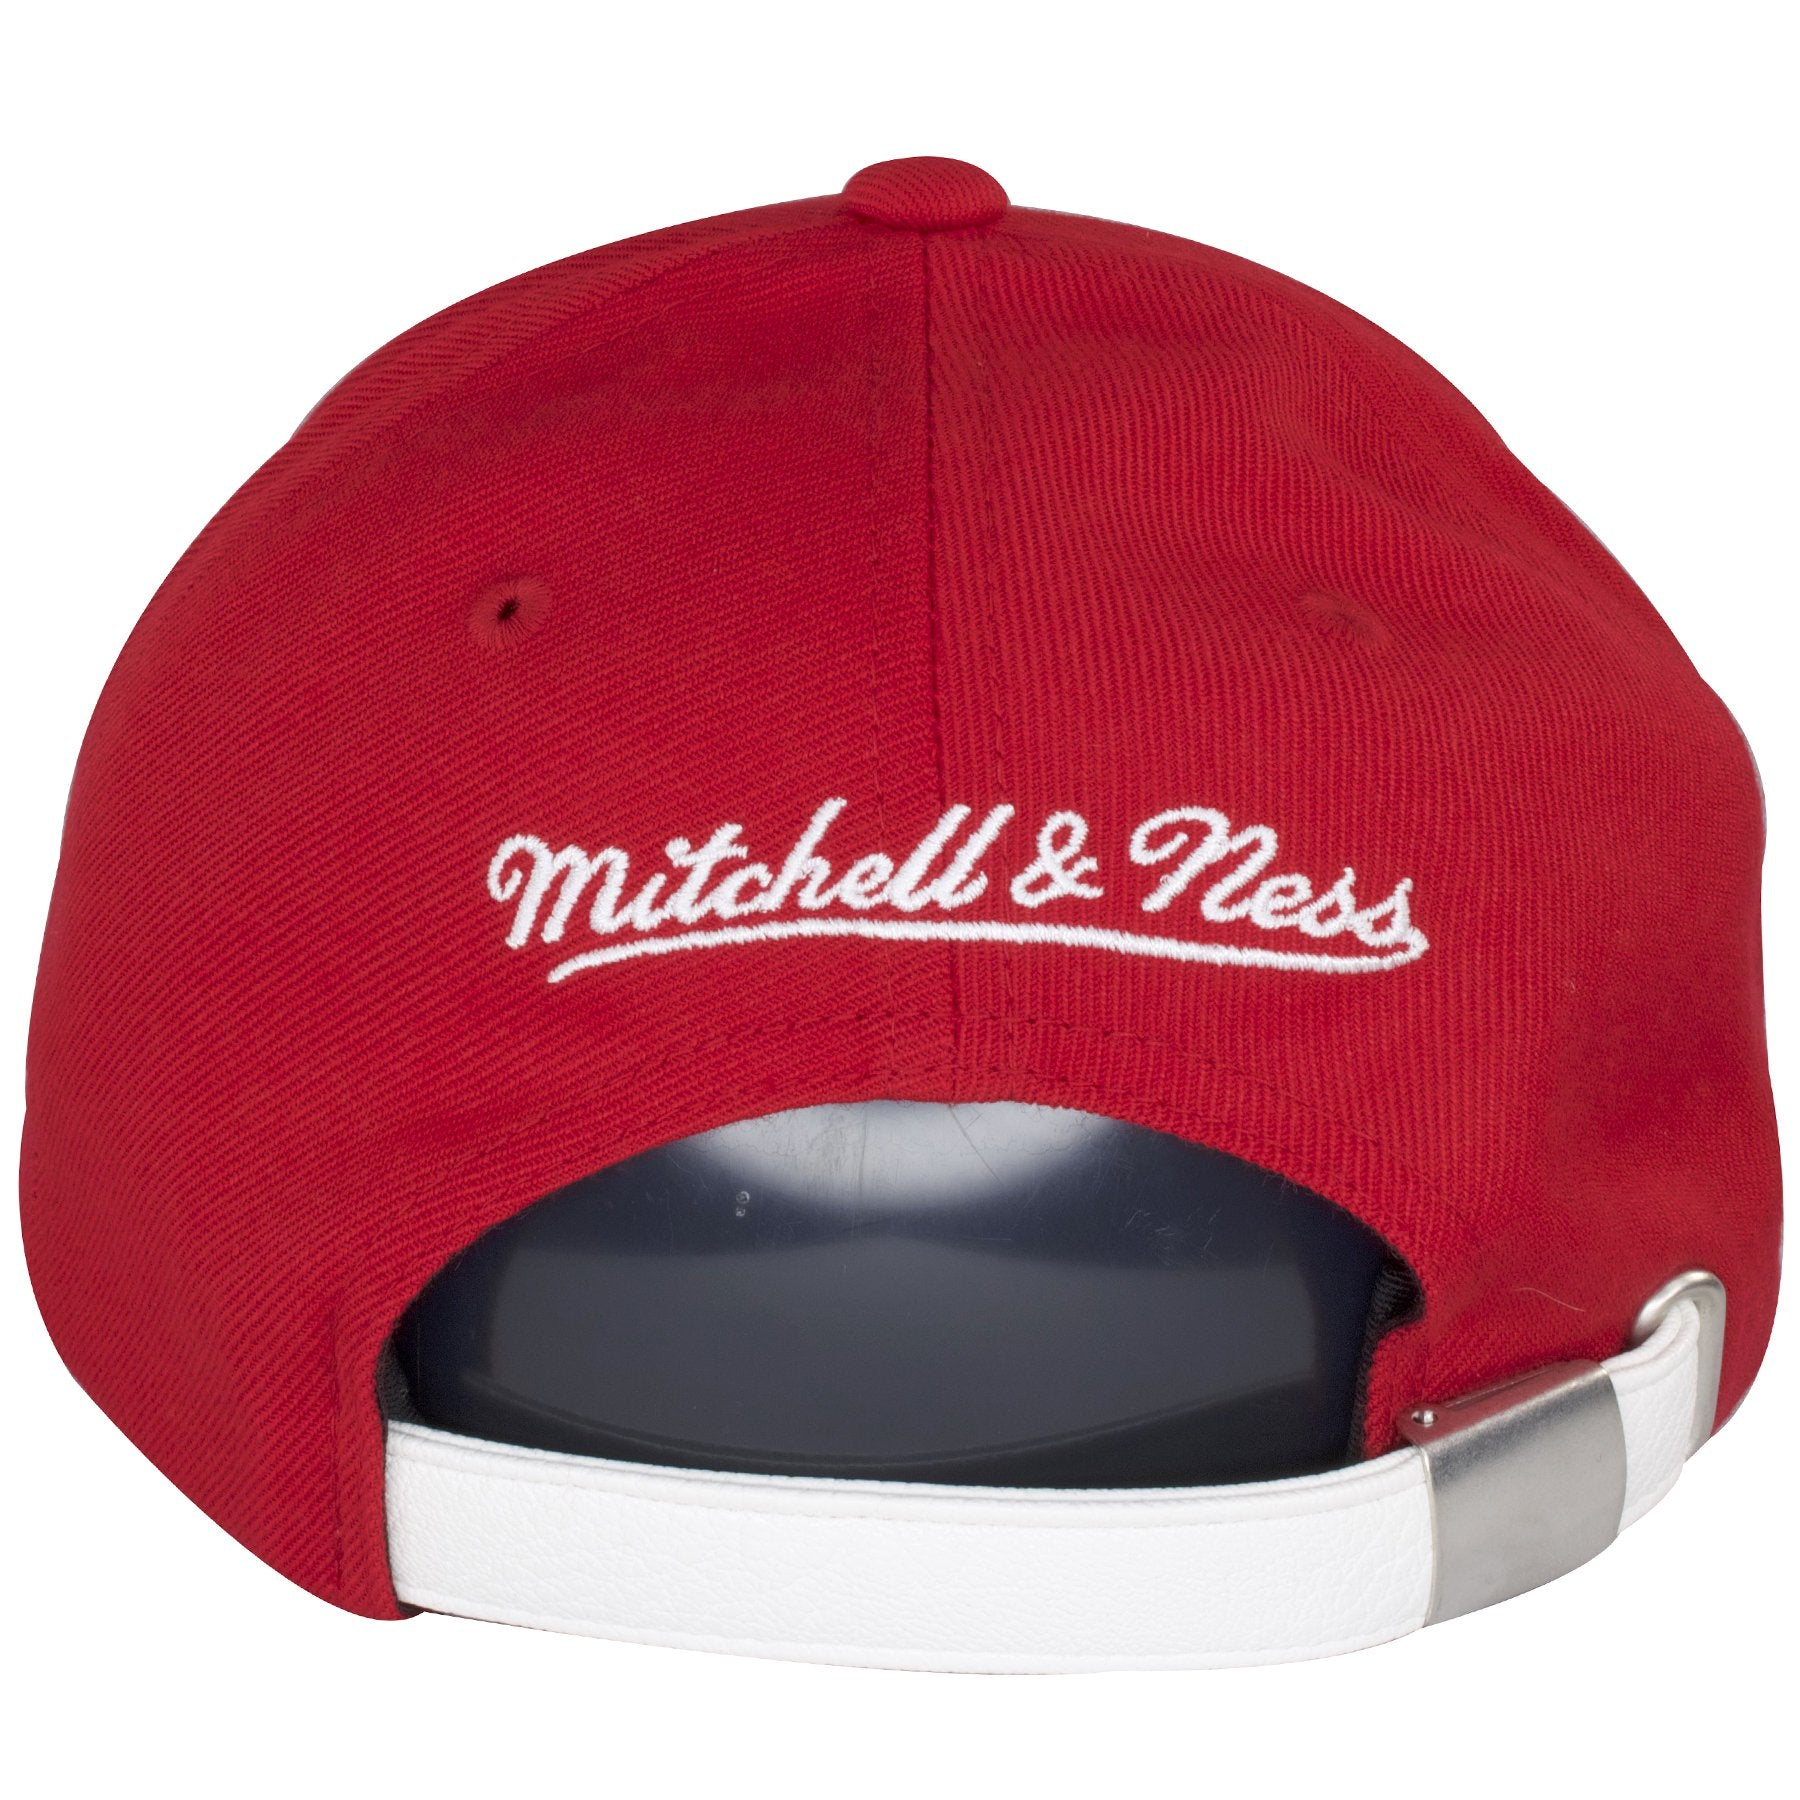 de9c0c552ab ... The back of this Red Chicago Bulls hat shows the Mitchell and Ness logo  embroidered on ...